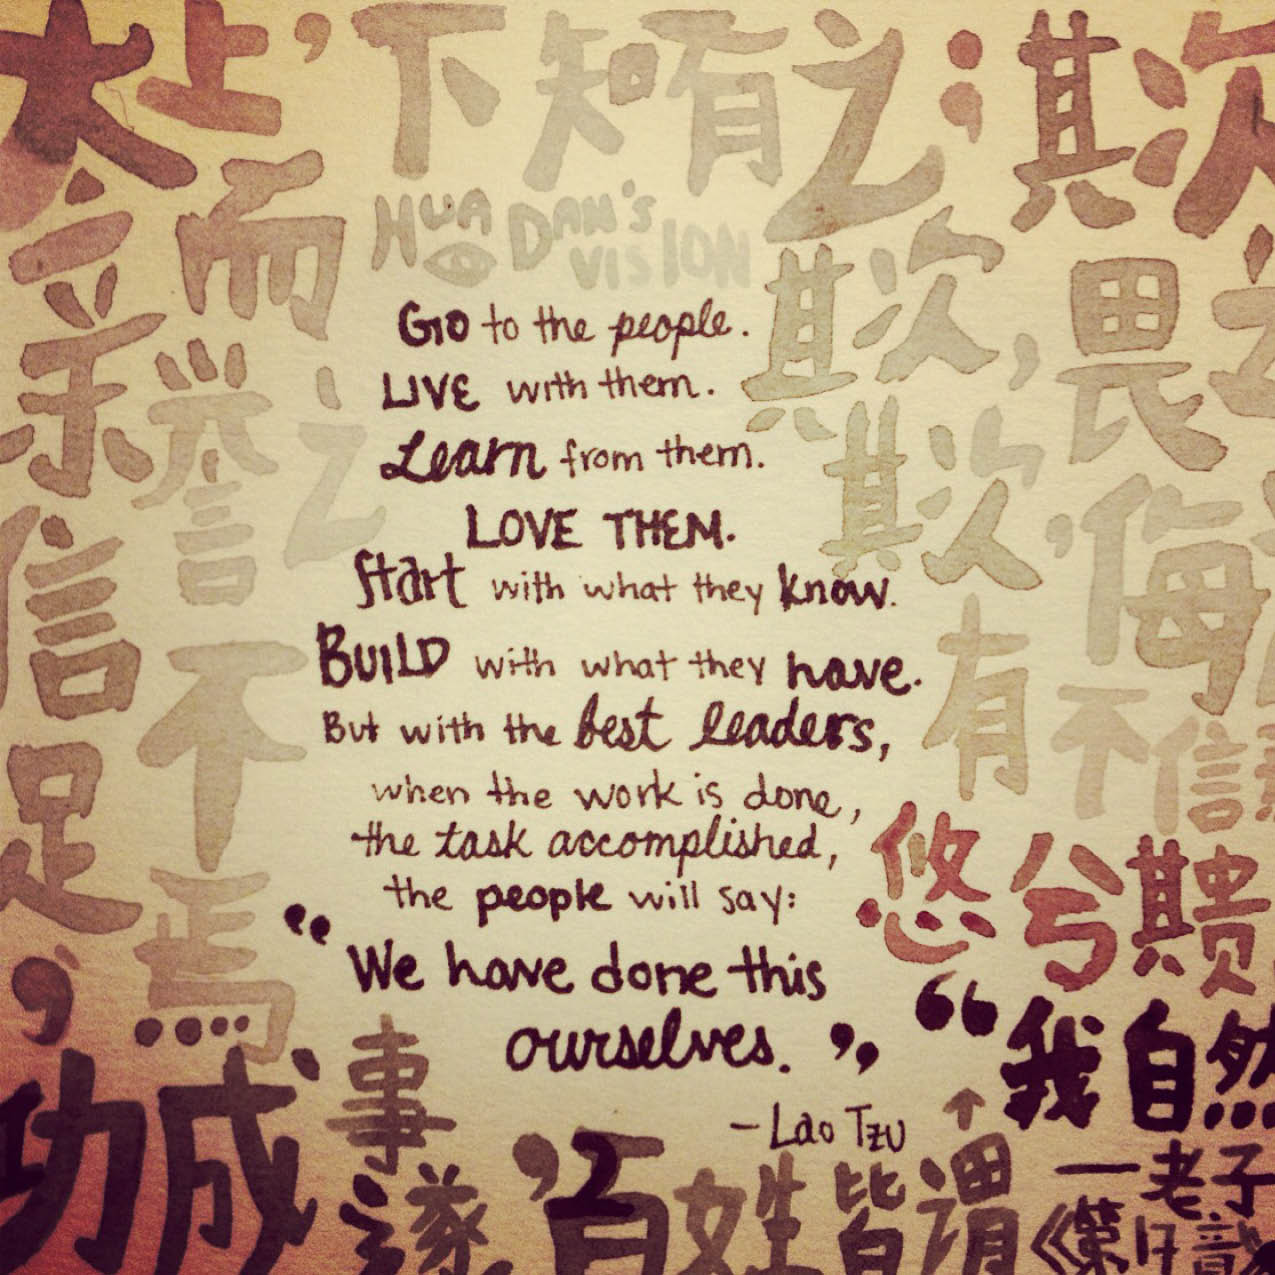 From Hua Dan's Vision statement